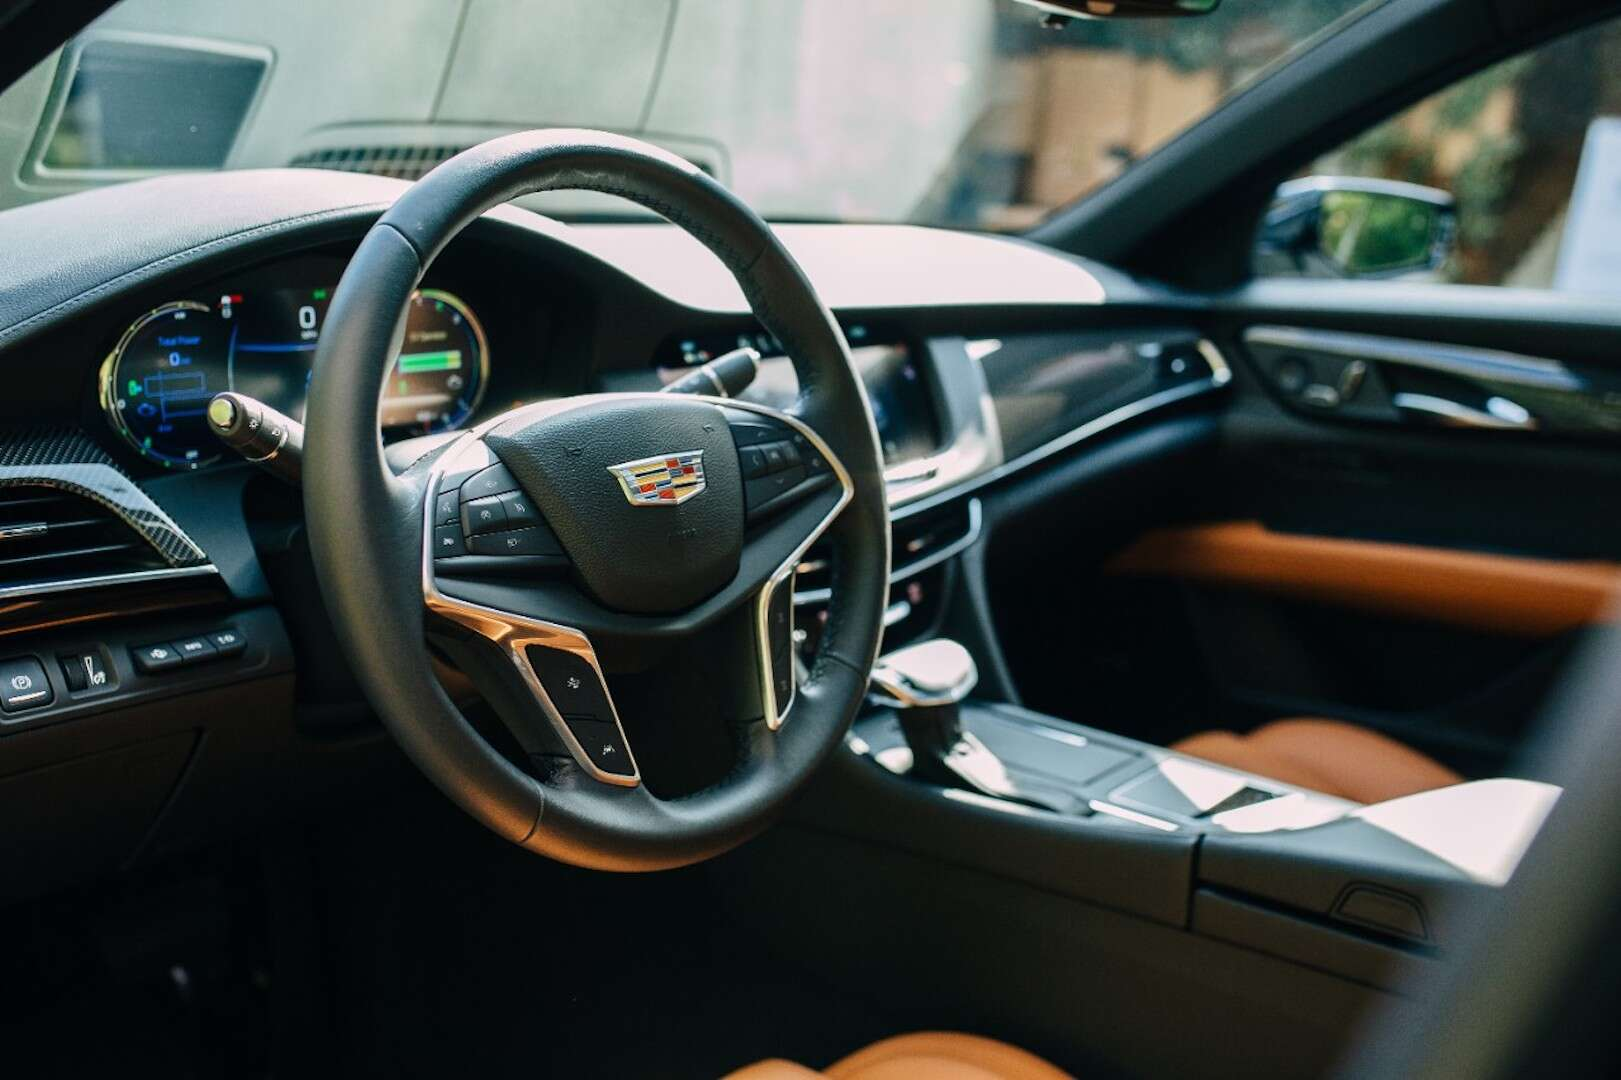 review reviews driving escalade suv road test cadillac hybrid